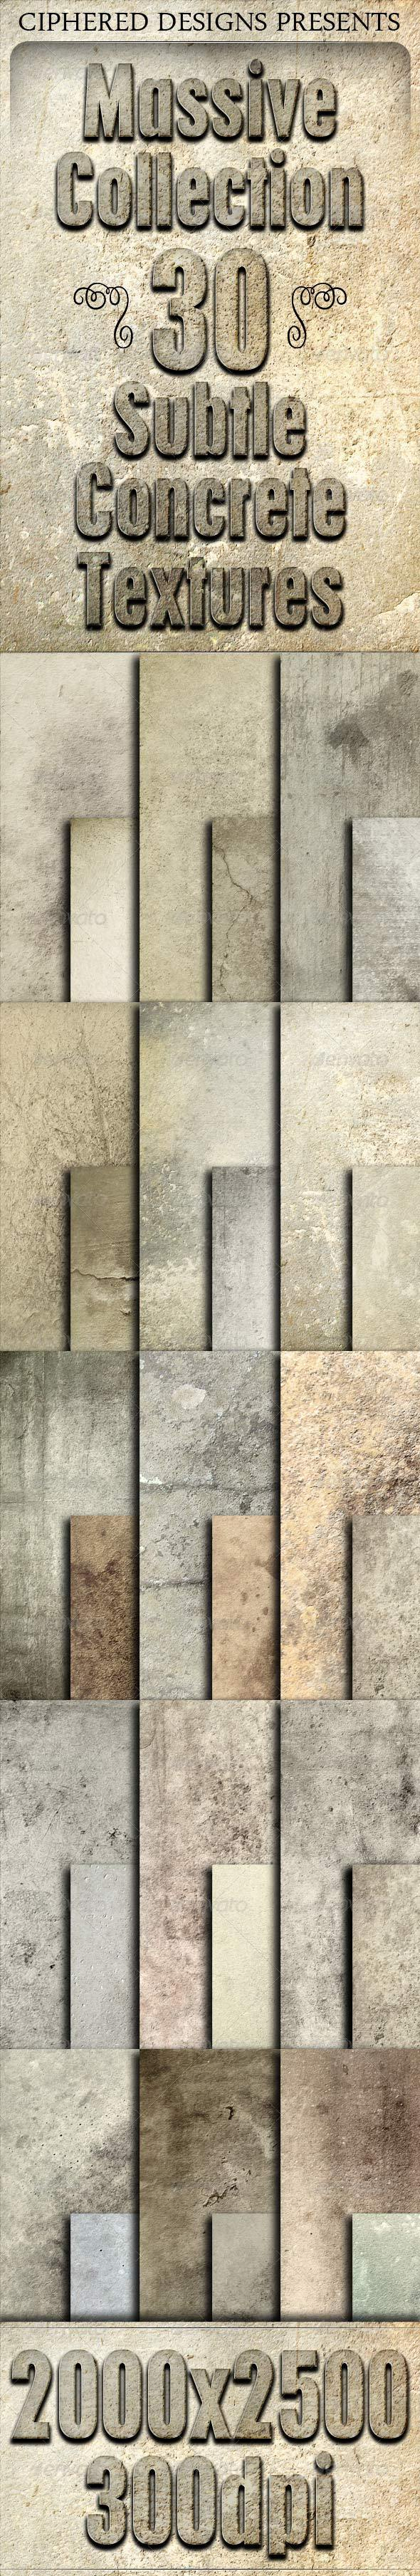 GraphicRiver Massive Collection 30 Subtle Concrete Textures 4419490